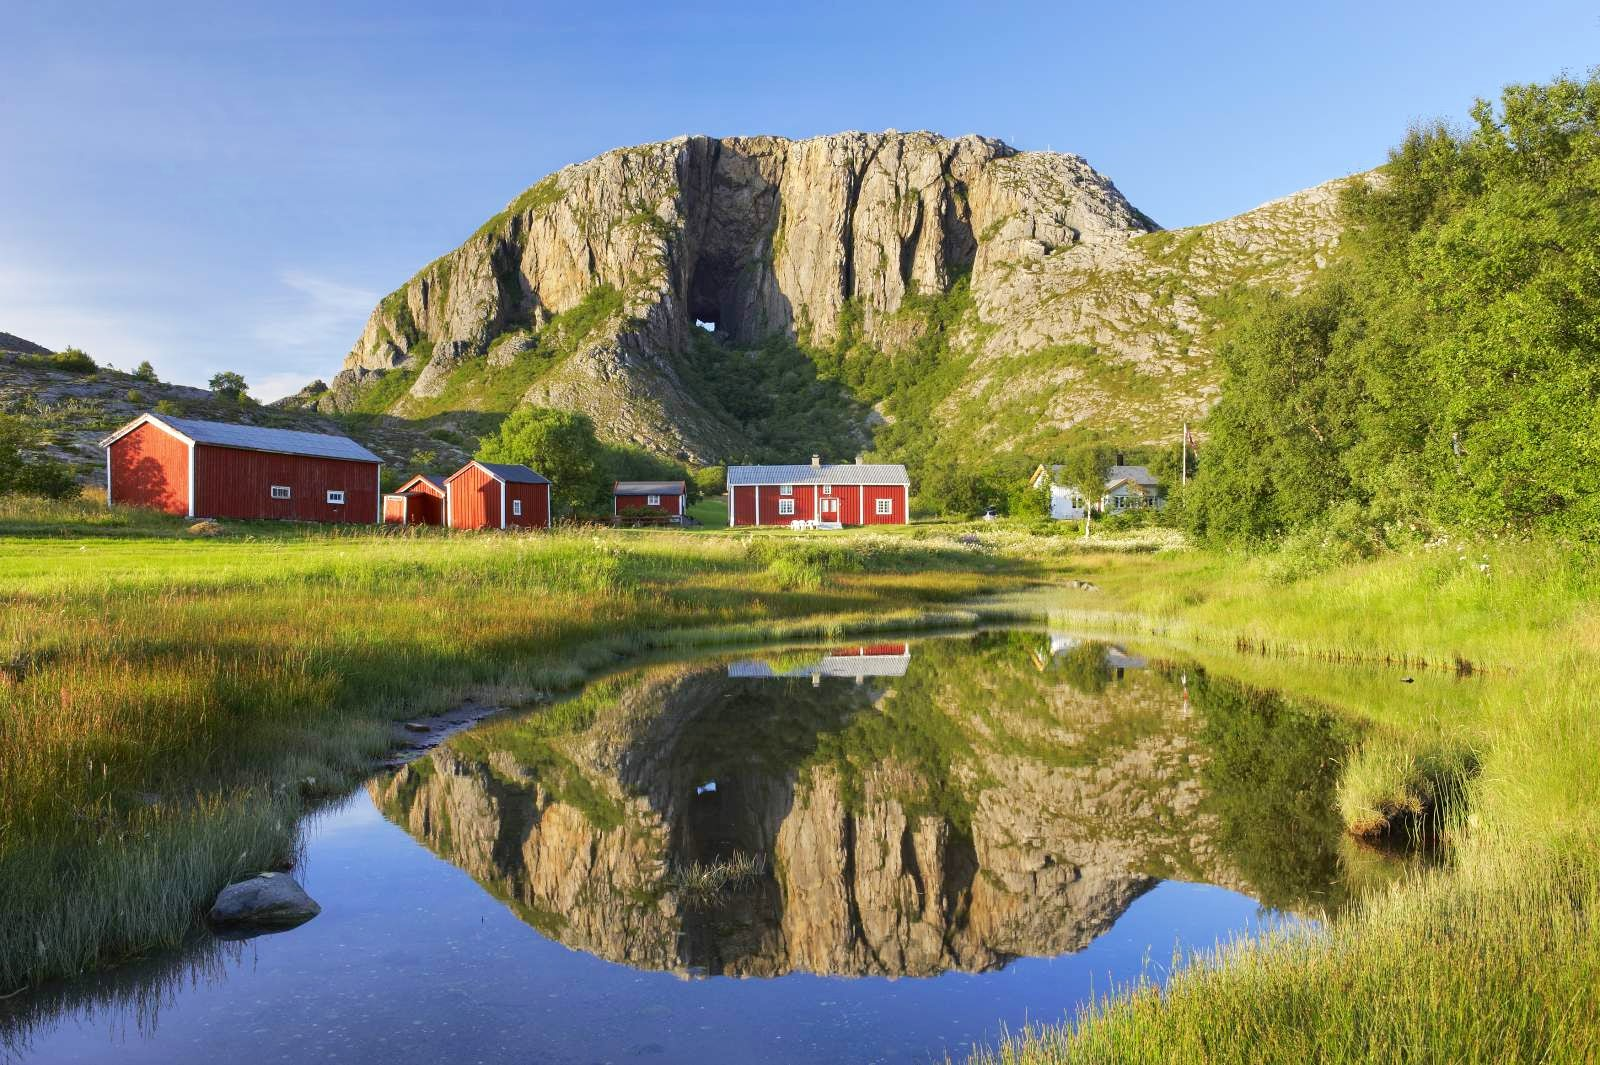 Picture © credits to VisitNorway